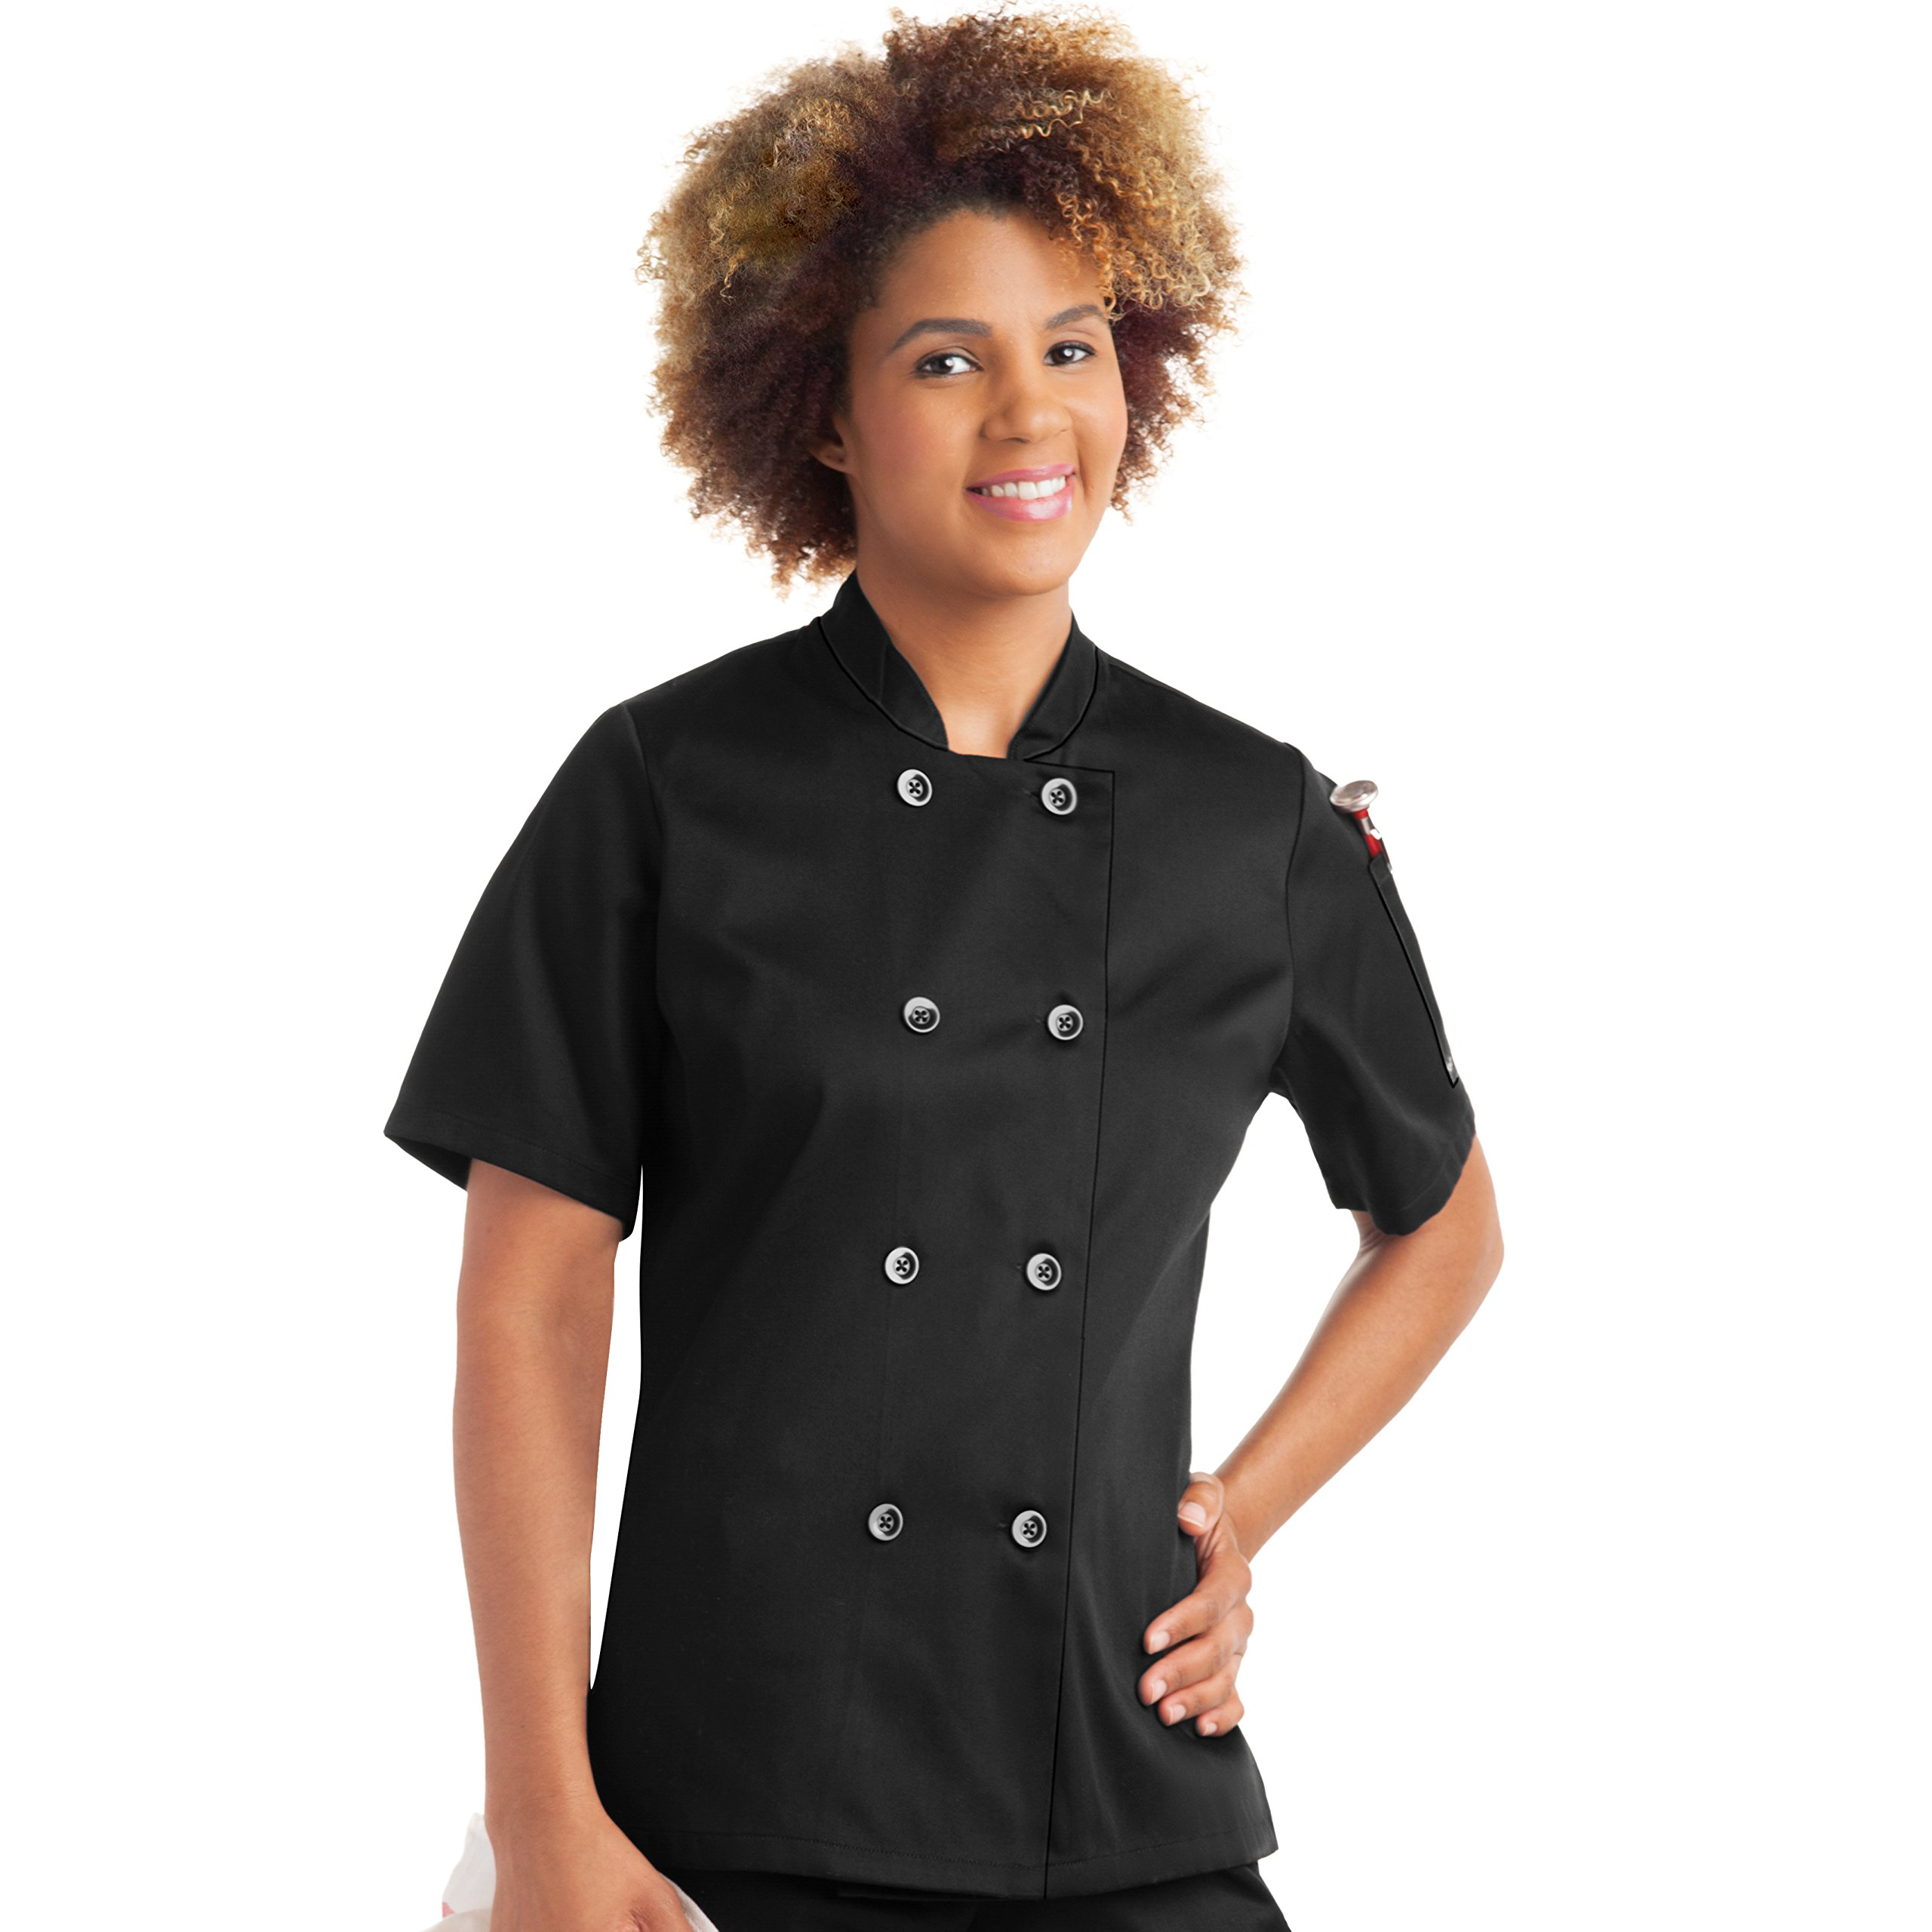 On The Line Women's Short Sleeve Chef Coat/Double Breasted/Plastic Button Reversible Front Closure (S-2X, 2 Colors) (Small, Black) by On The Line (Image #7)